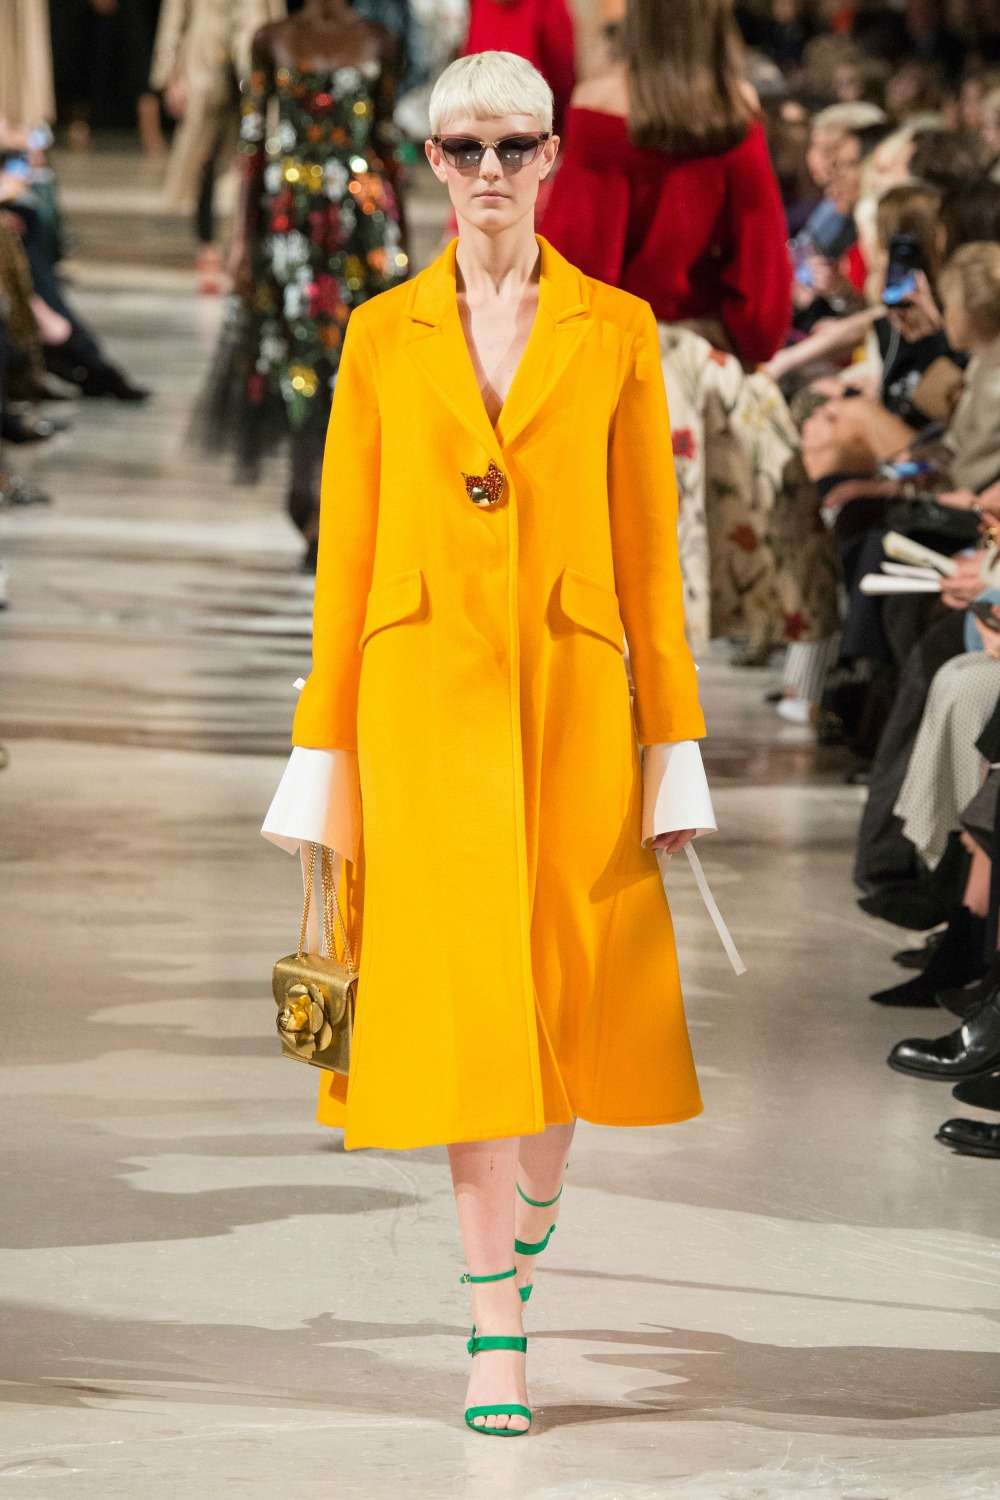 Yellow Fall Fashion Trend on the Oscar de la Renta FW18 Runway at New York Fashion Week #FallFashion #FallTrends #Runway #FashionWeek #NYFW #FallStyle #FallTrends